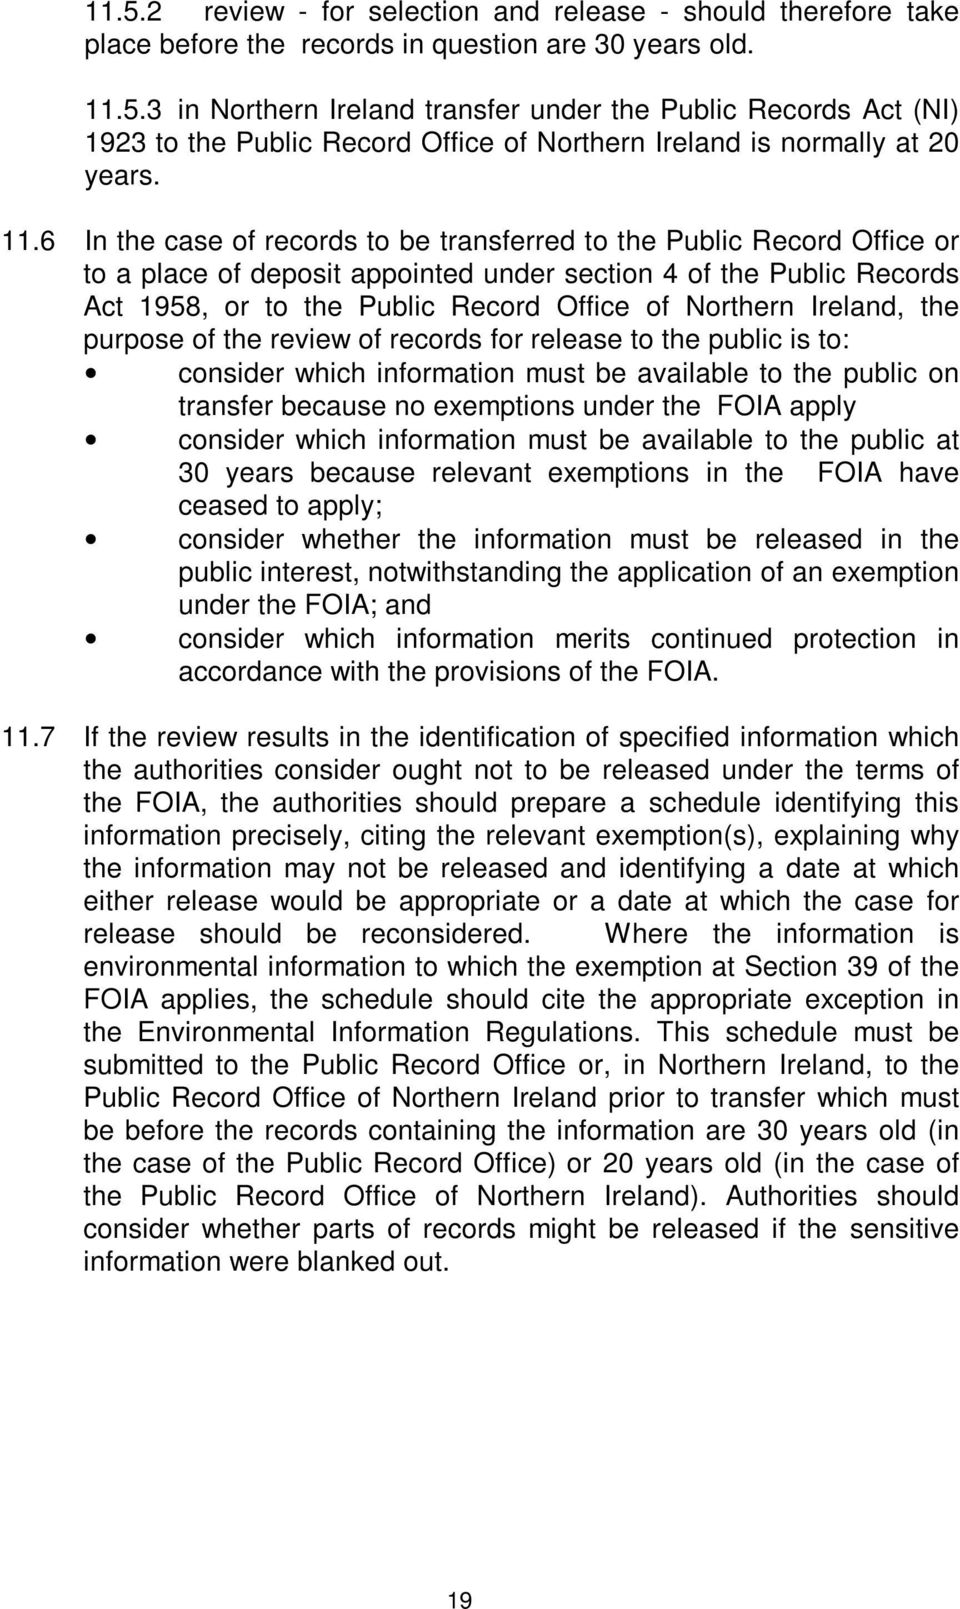 Ireland, the purpose of the review of records for release to the public is to: consider which information must be available to the public on transfer because no exemptions under the FOIA apply